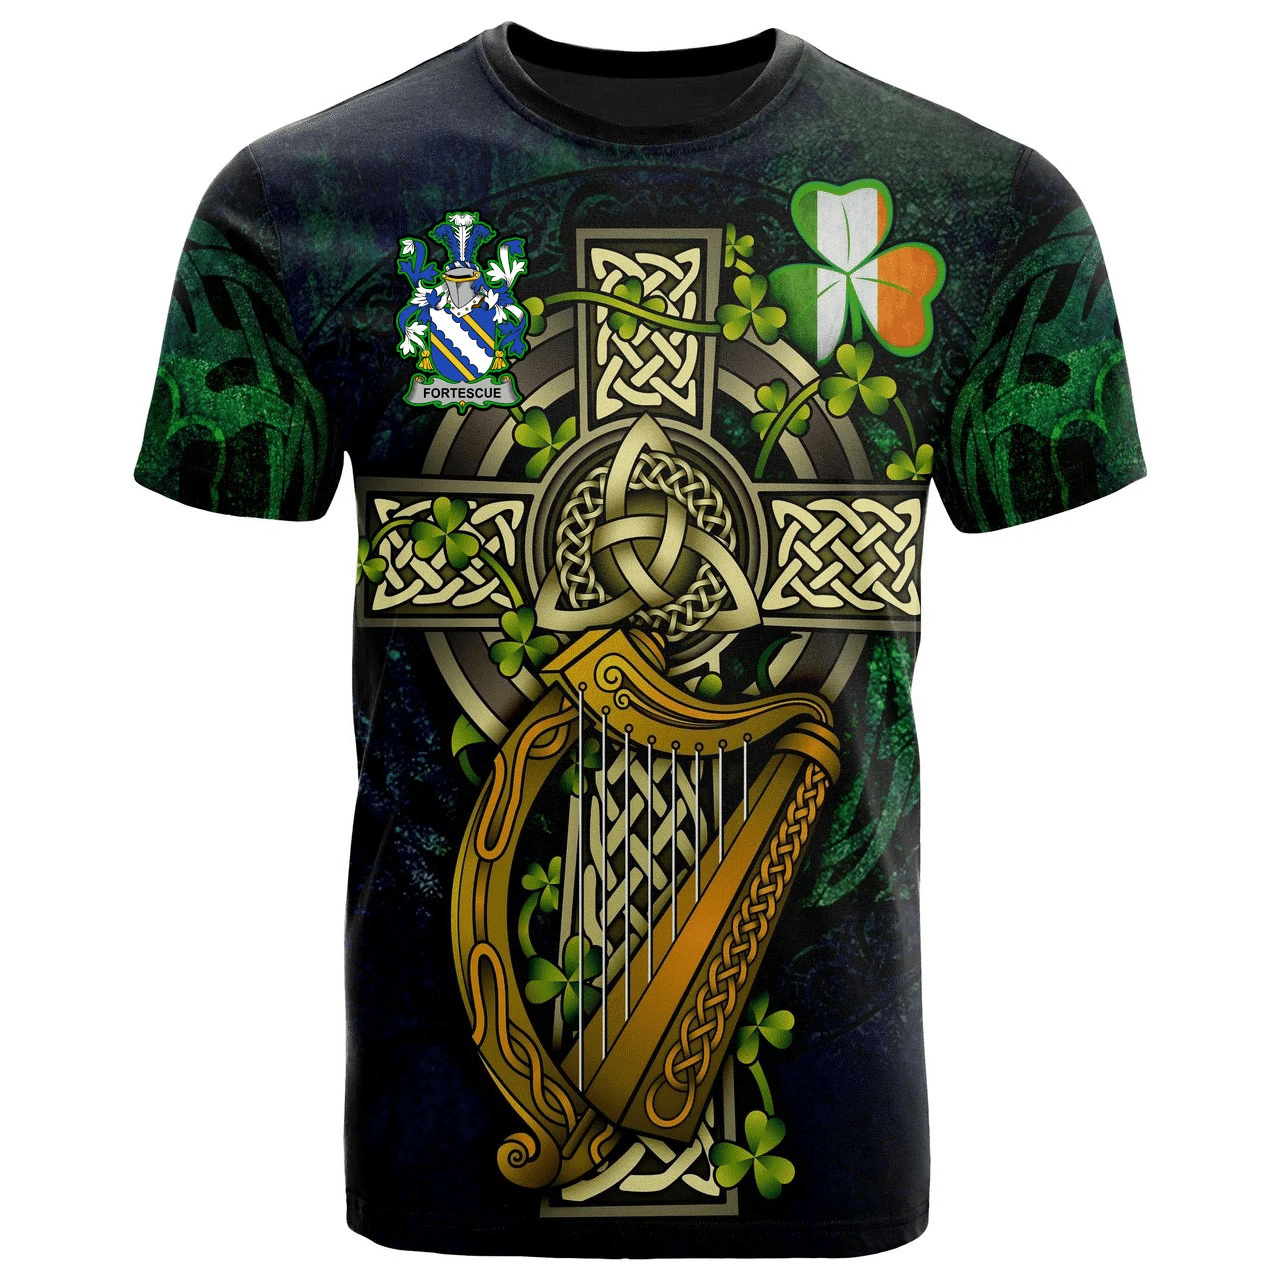 1sttheworld Ireland T-Shirt - Fortescue Irish Family Crest and Celtic Cross A7